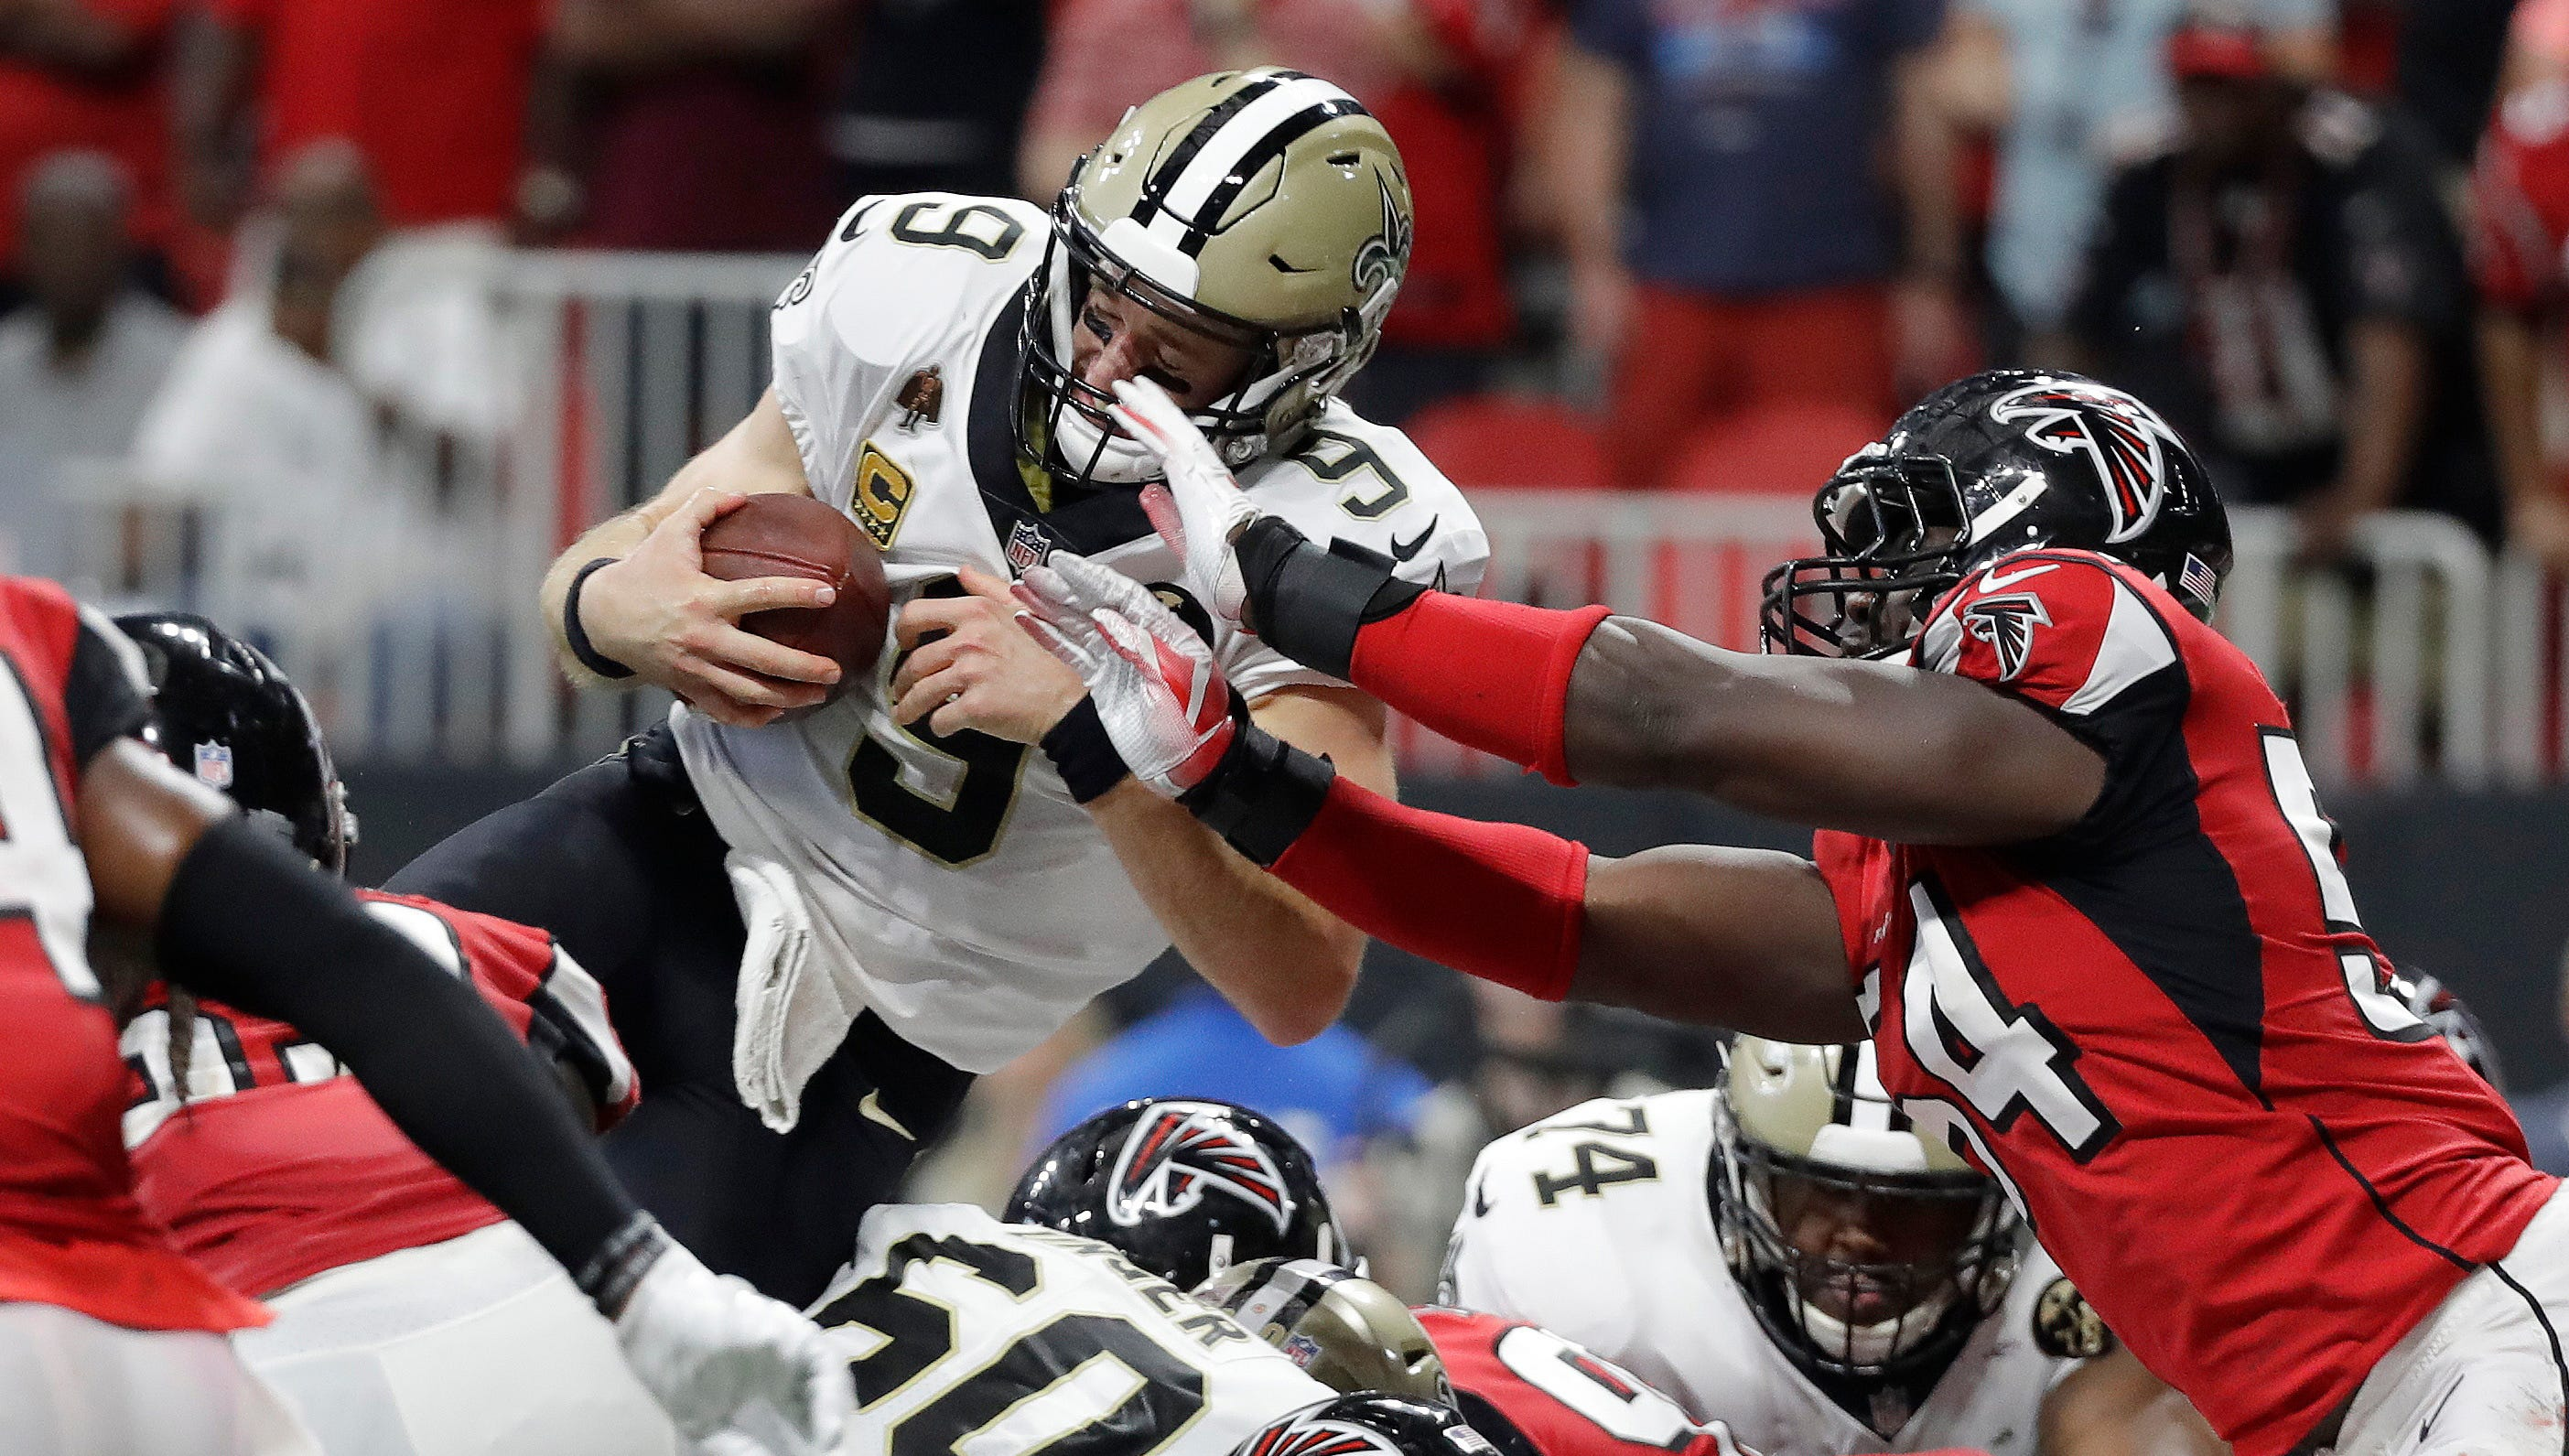 Drew Brees' touchdown run in overtime lifts Saints past Falcons in record-setting day